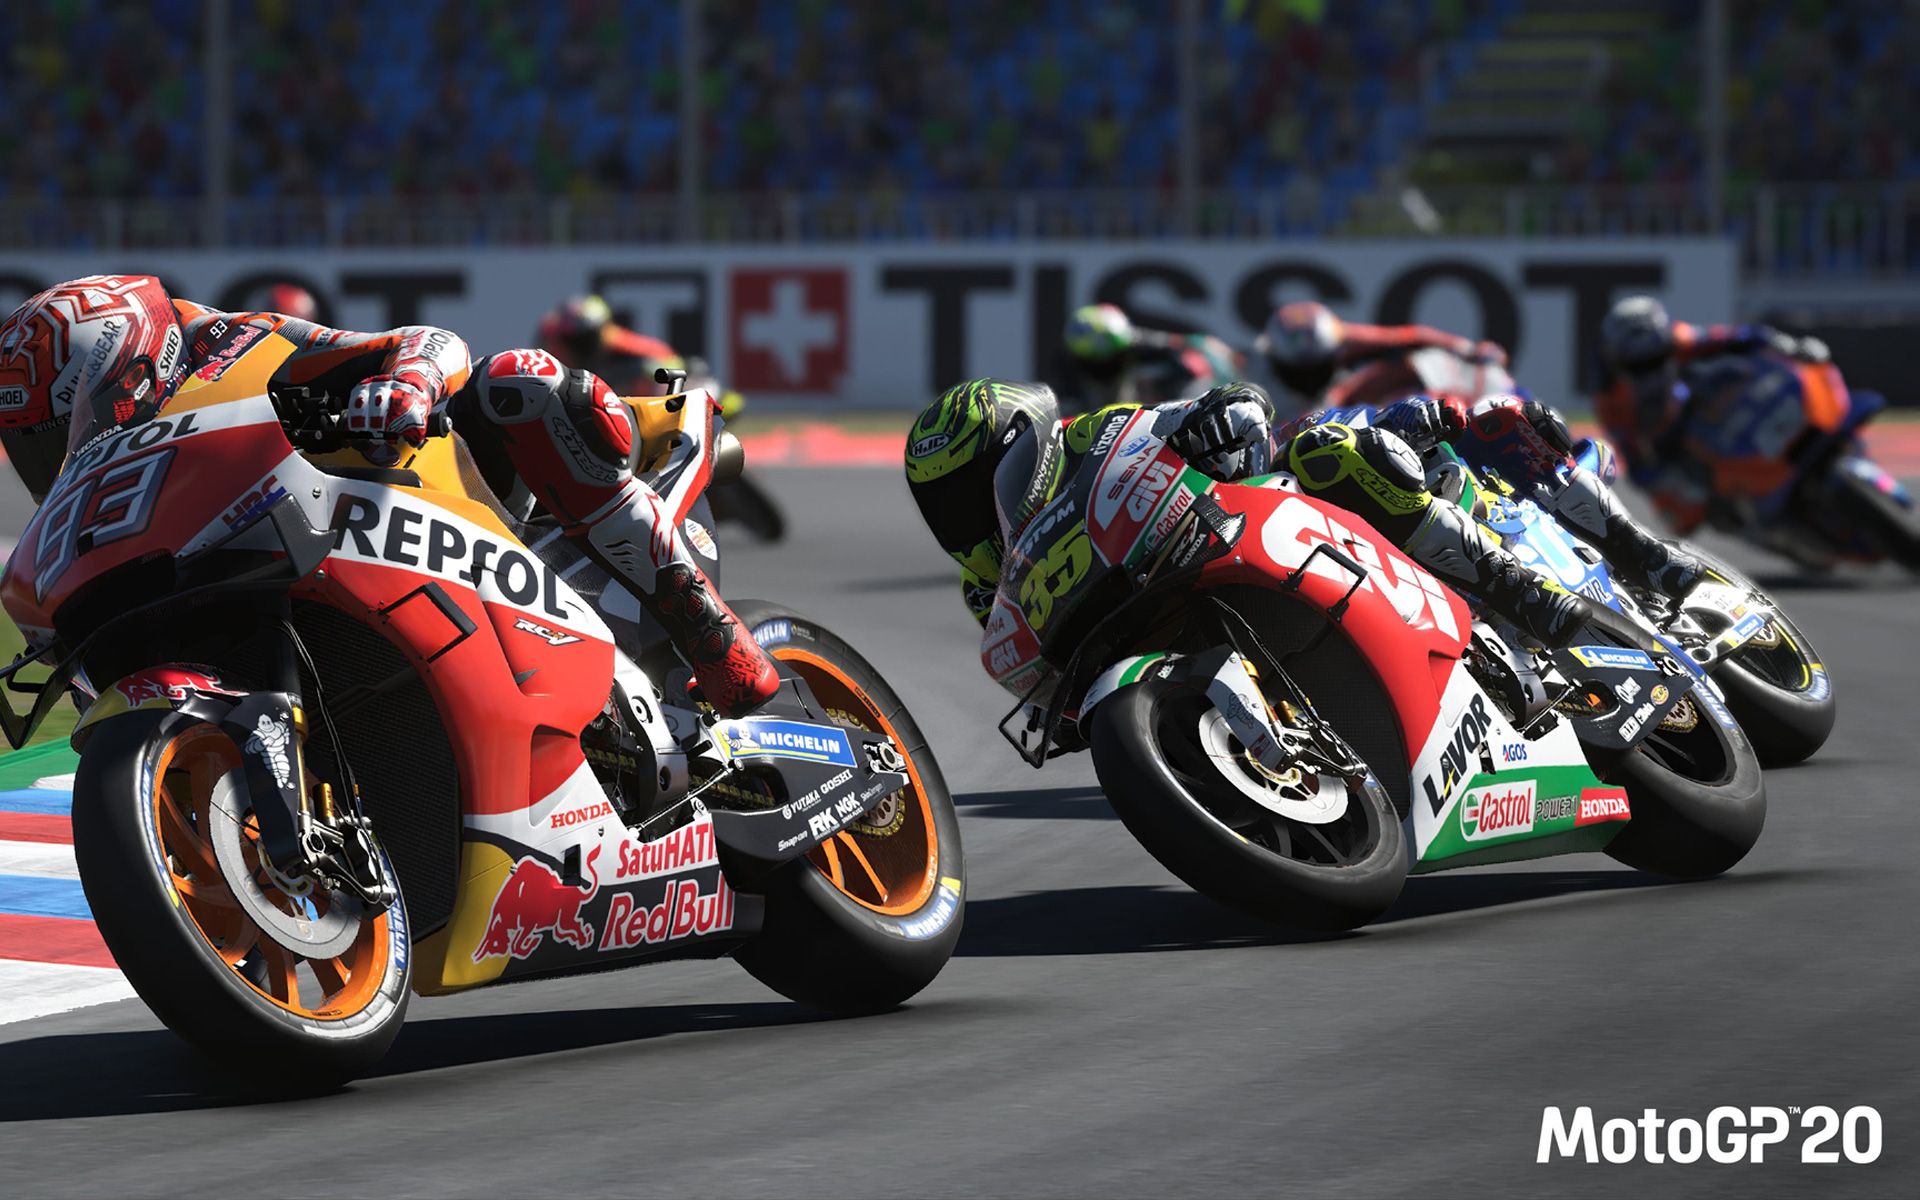 MotoGP 20 Wallpaper in 1920x1200